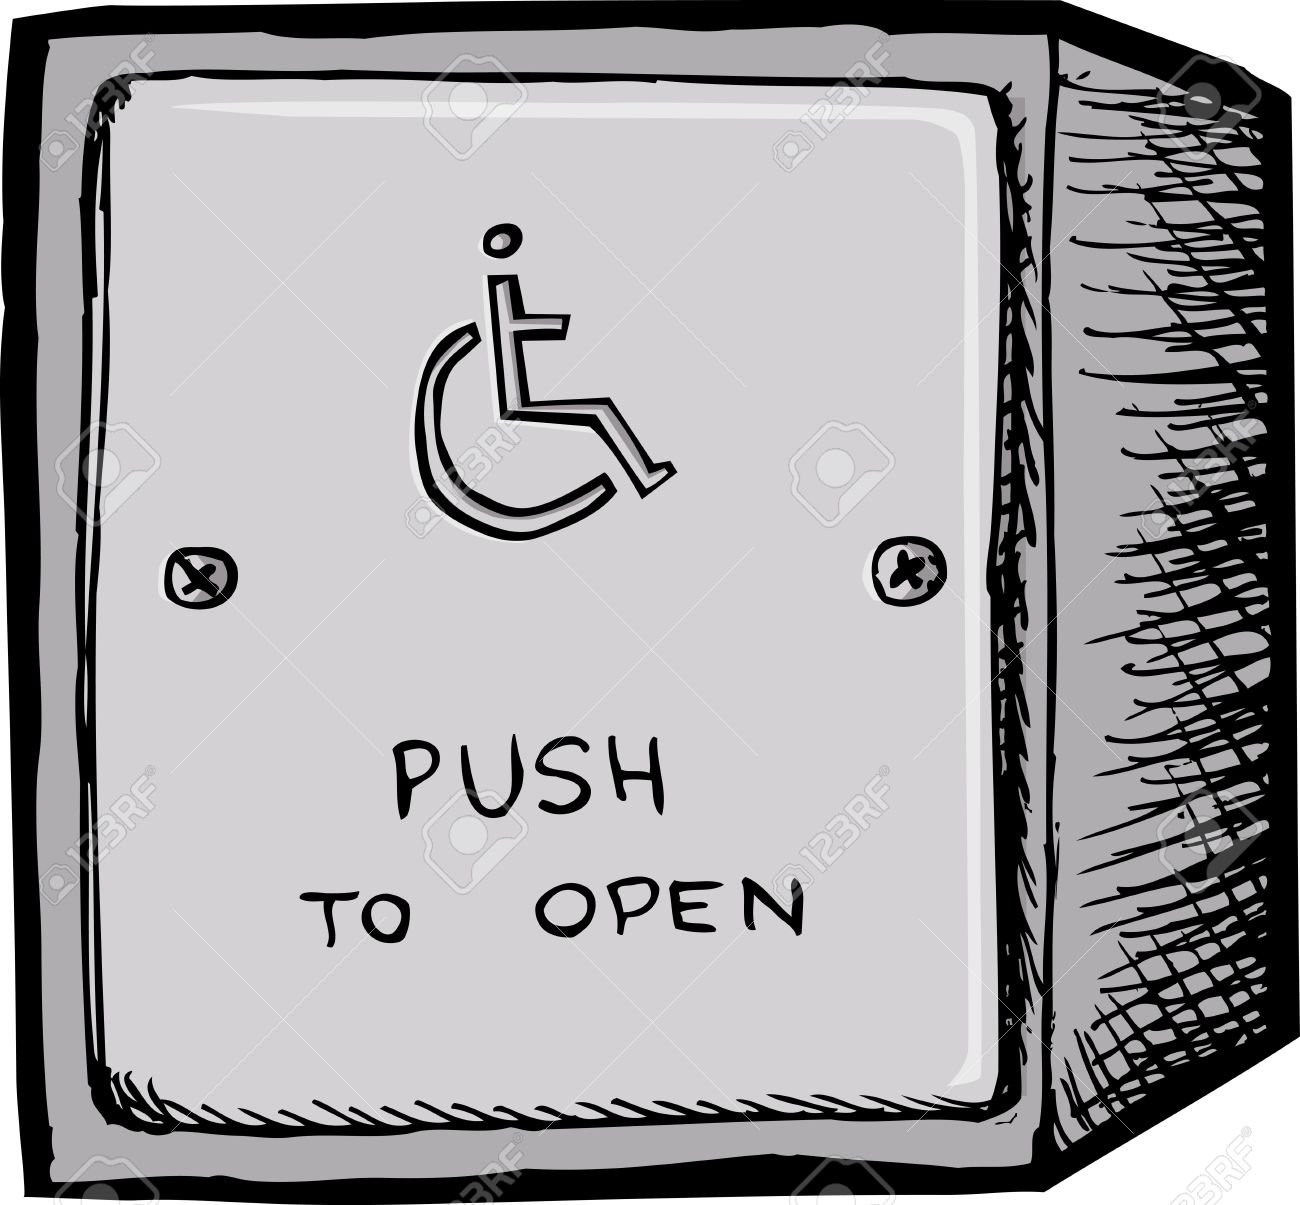 Accessible Electronic Door Opener Button On White Background.